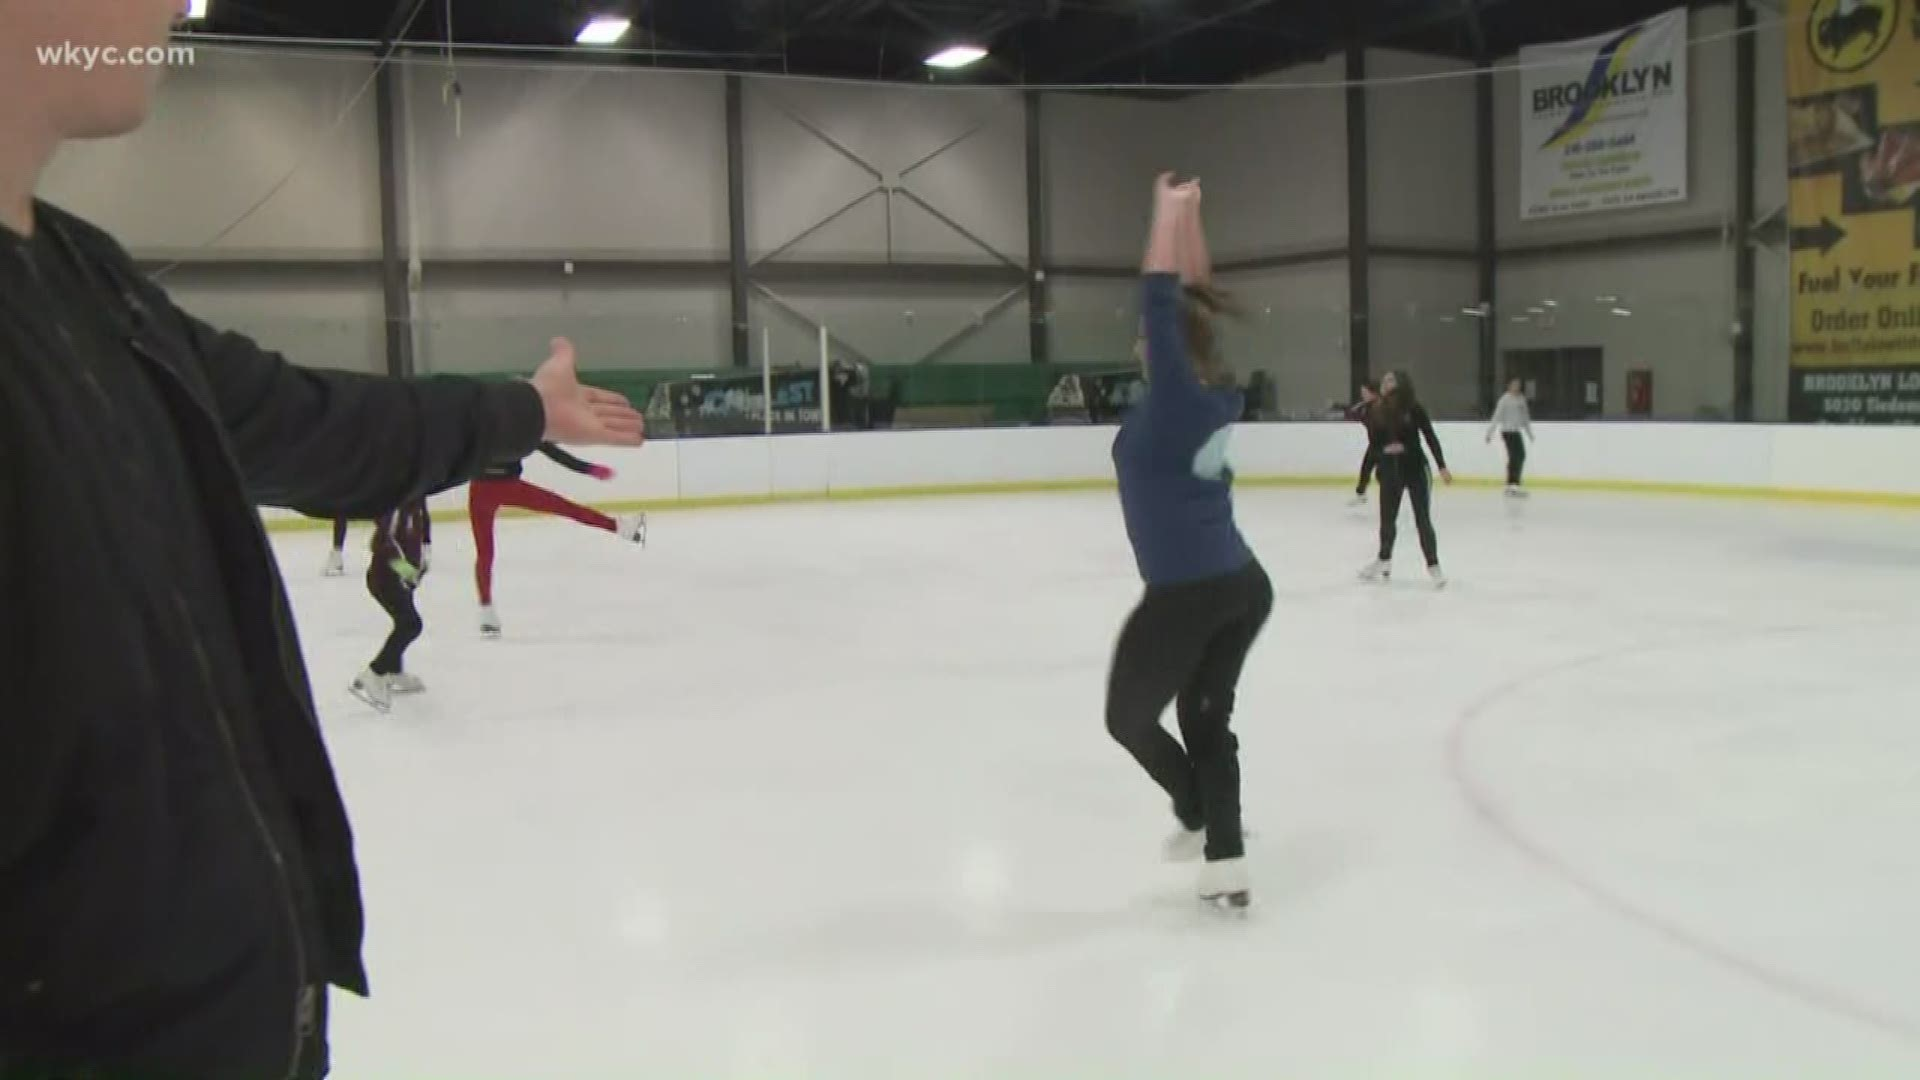 Local Rink Offering Free Ice Skating Lessons Sunday Wkyc Com